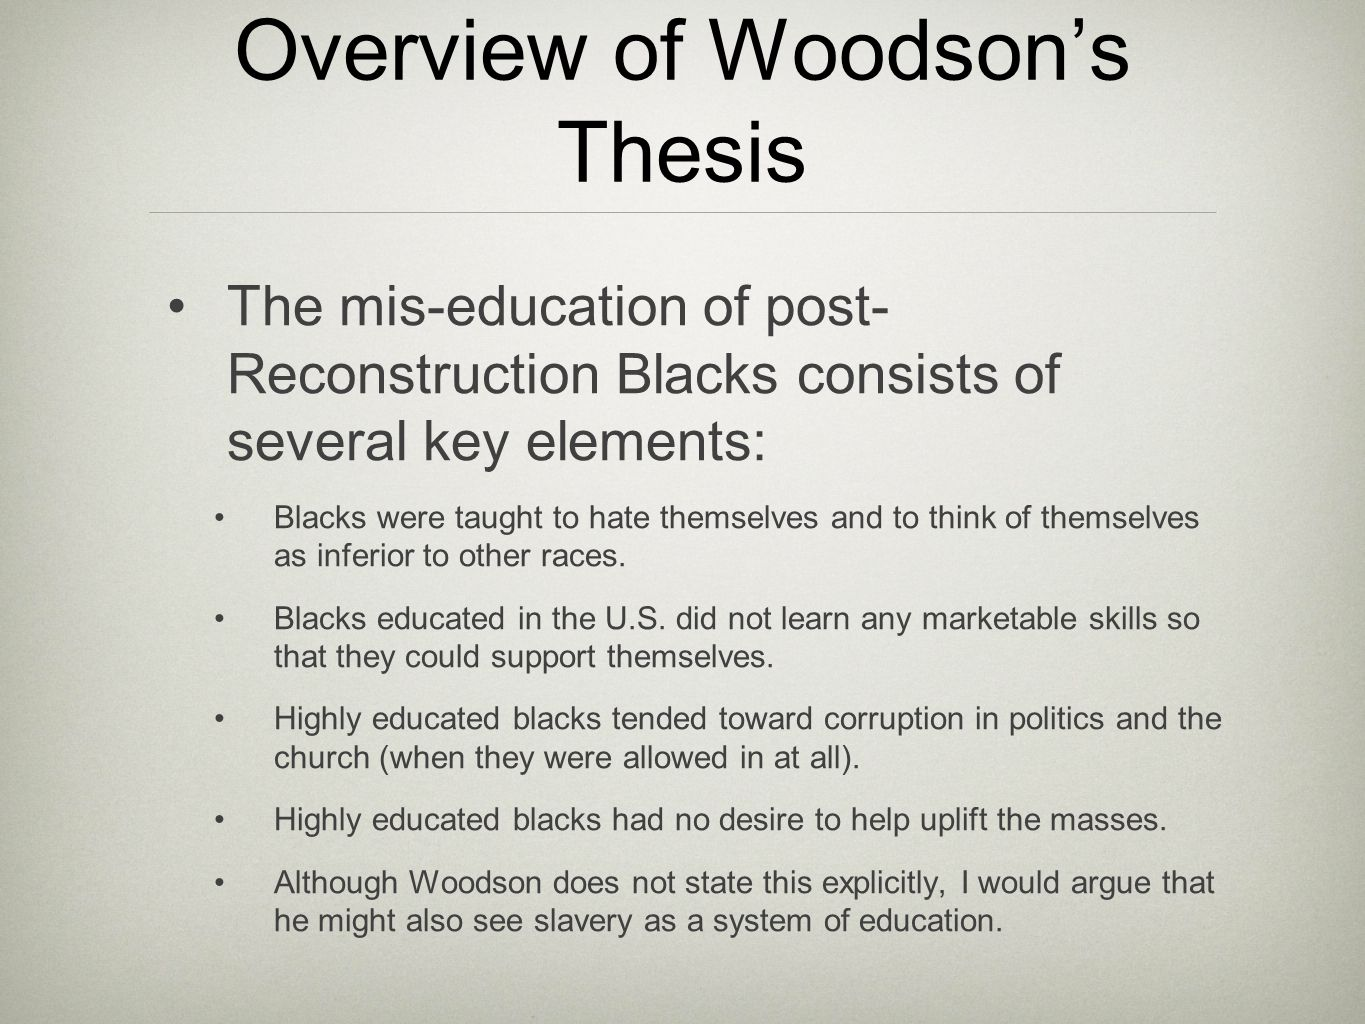 Overview of Woodson's Thesis